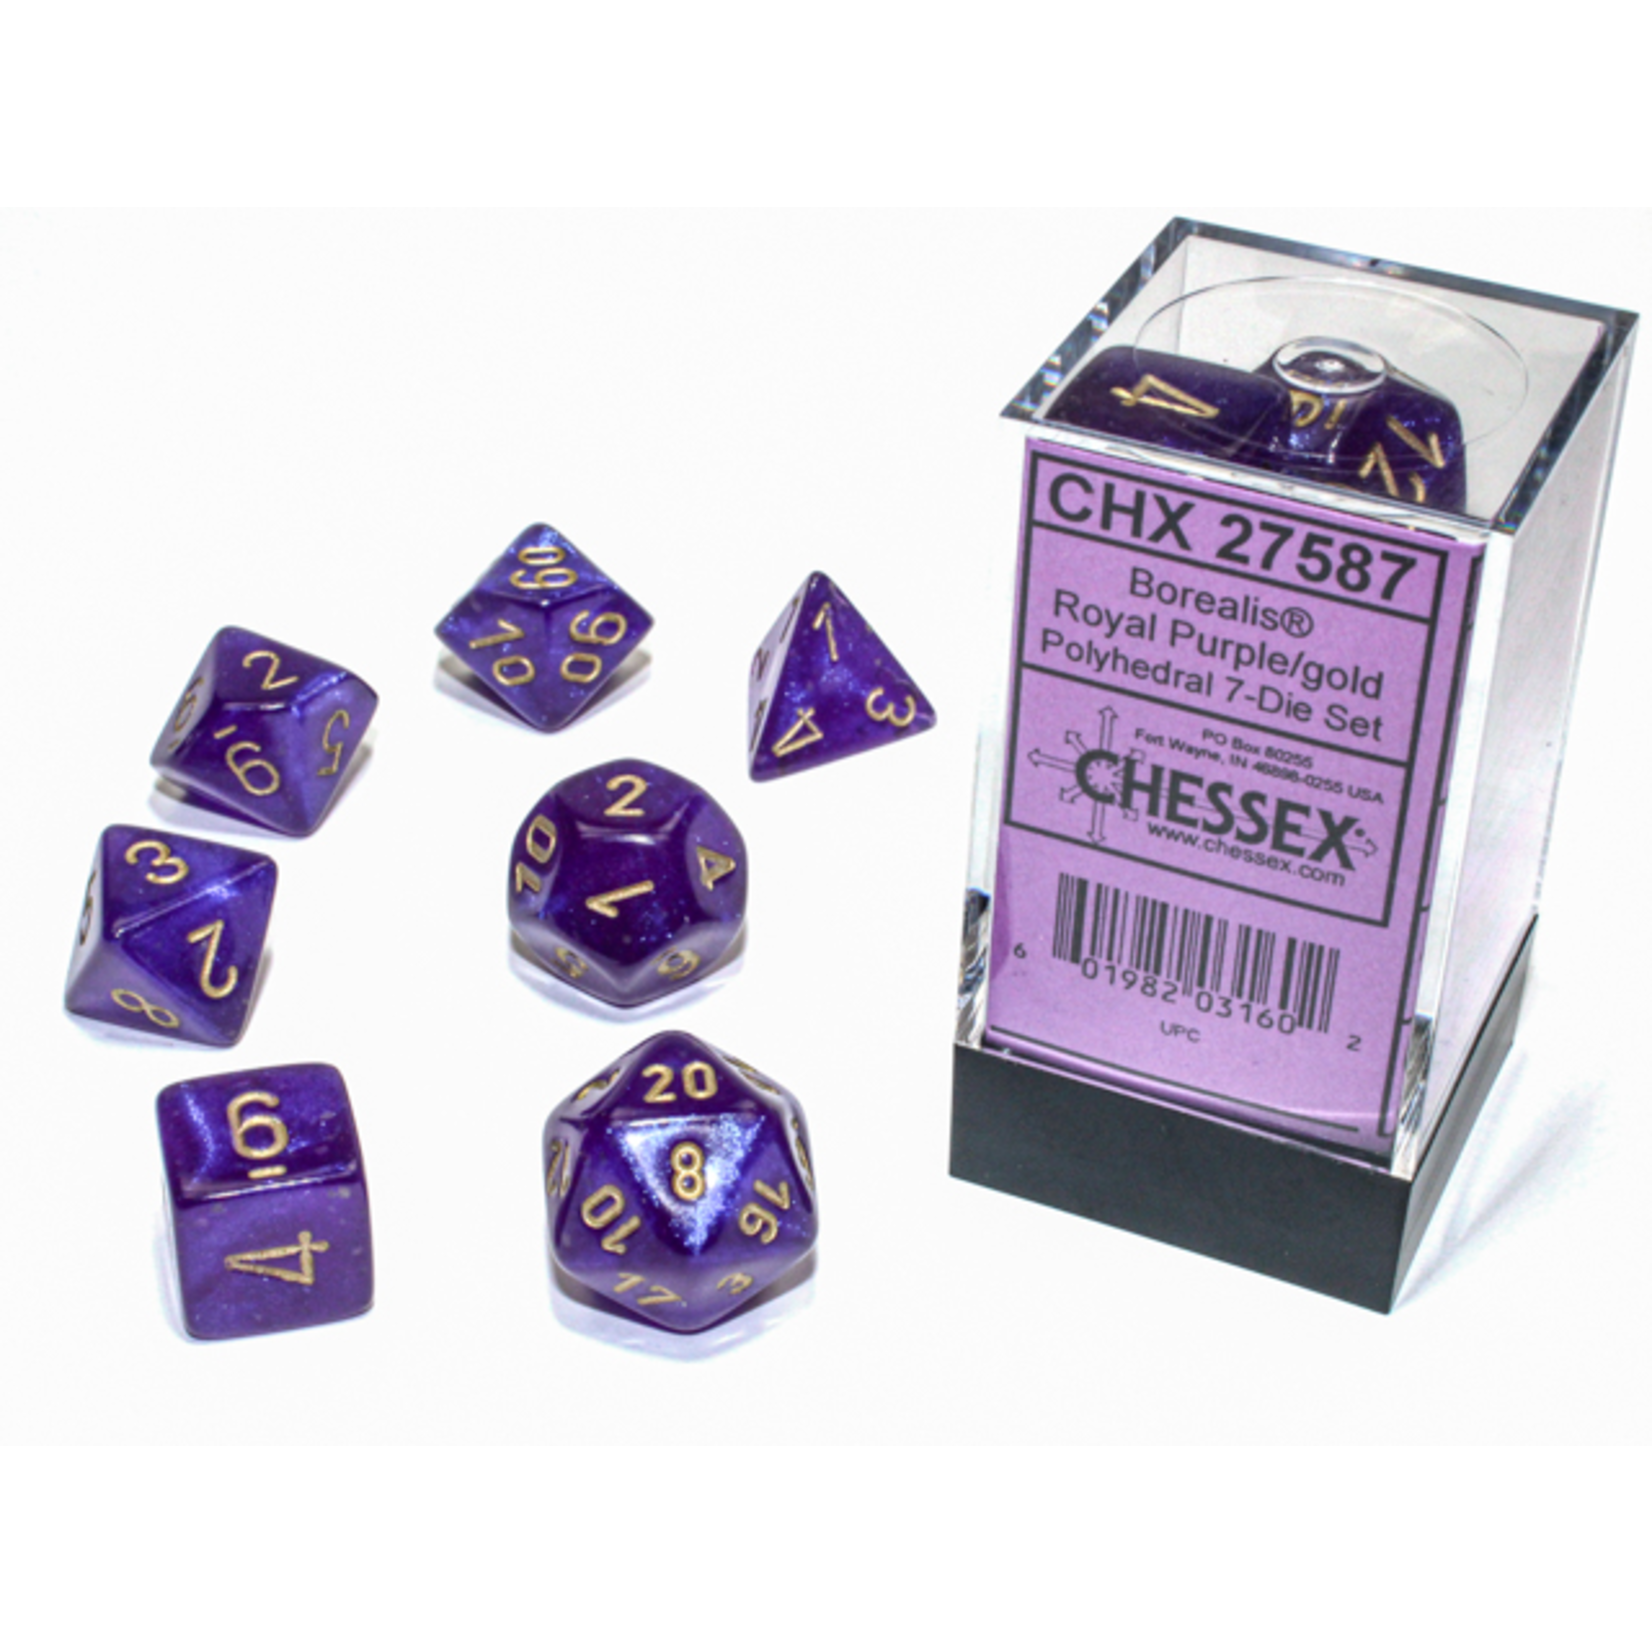 Chessex Dice: 7-Set Borealis Luminary Royal Purple with Gold Numbers (CHX)